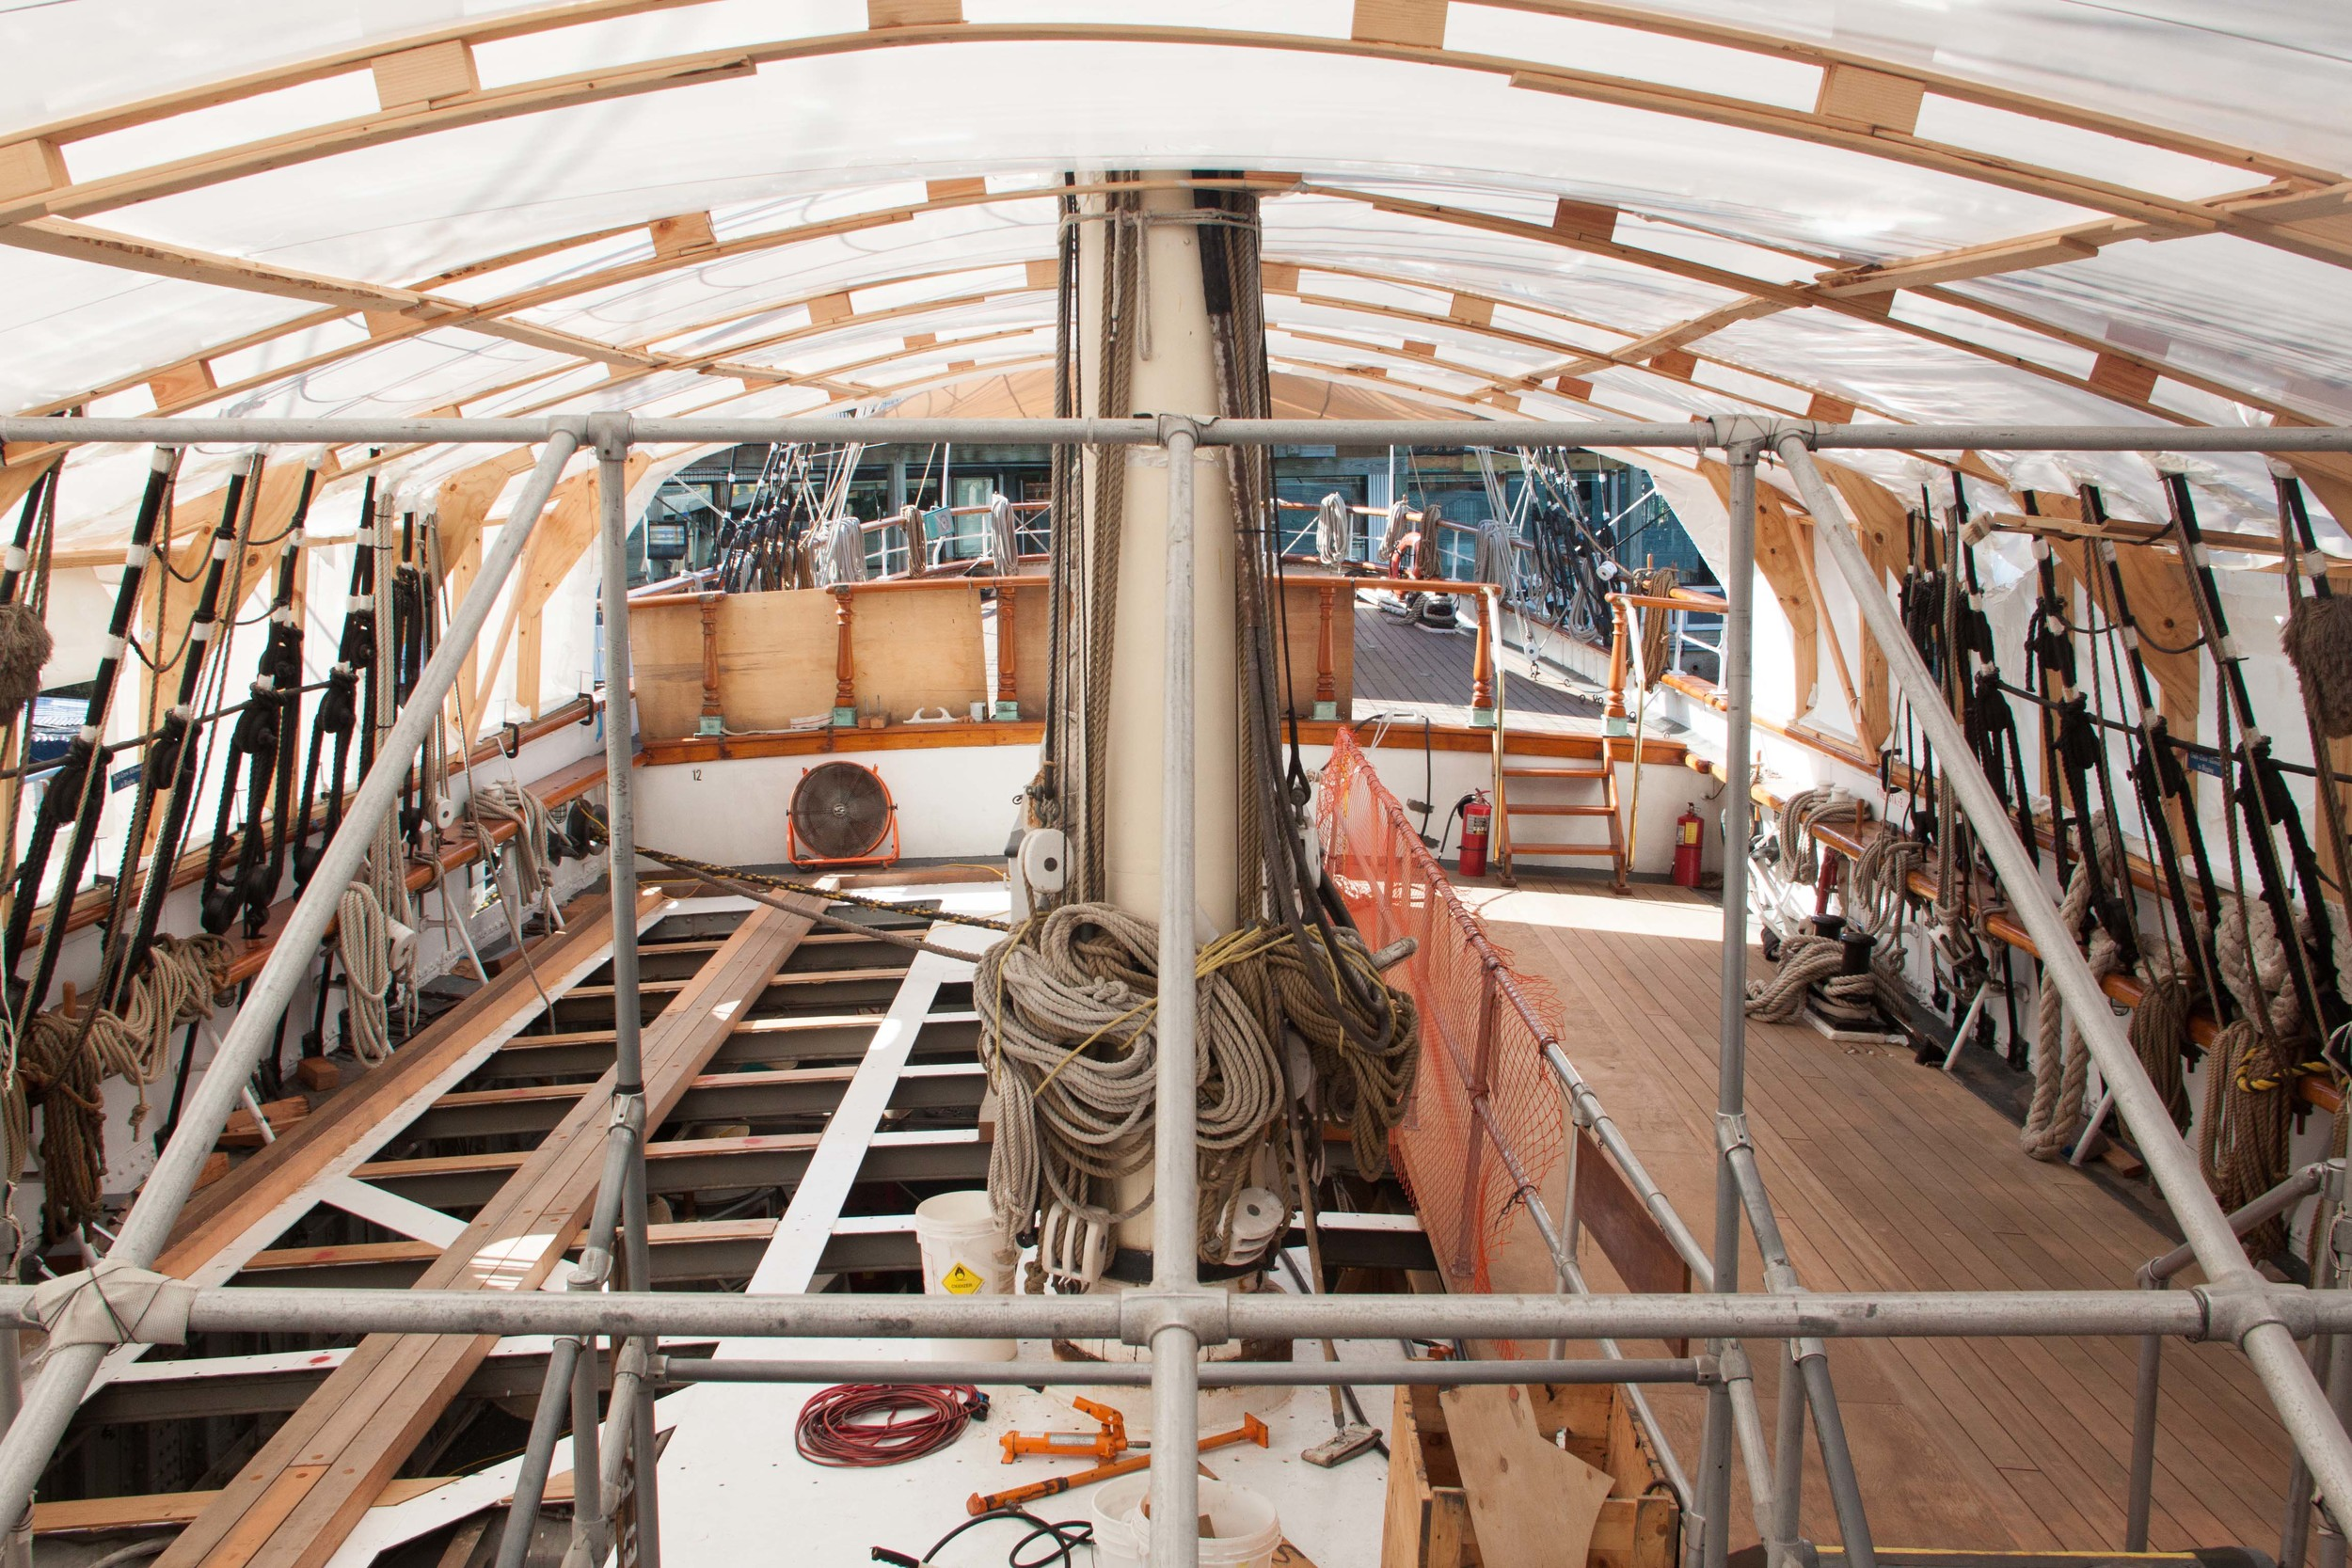 The deck needed to be sectioned off so visitors to the museum could visit at any time.